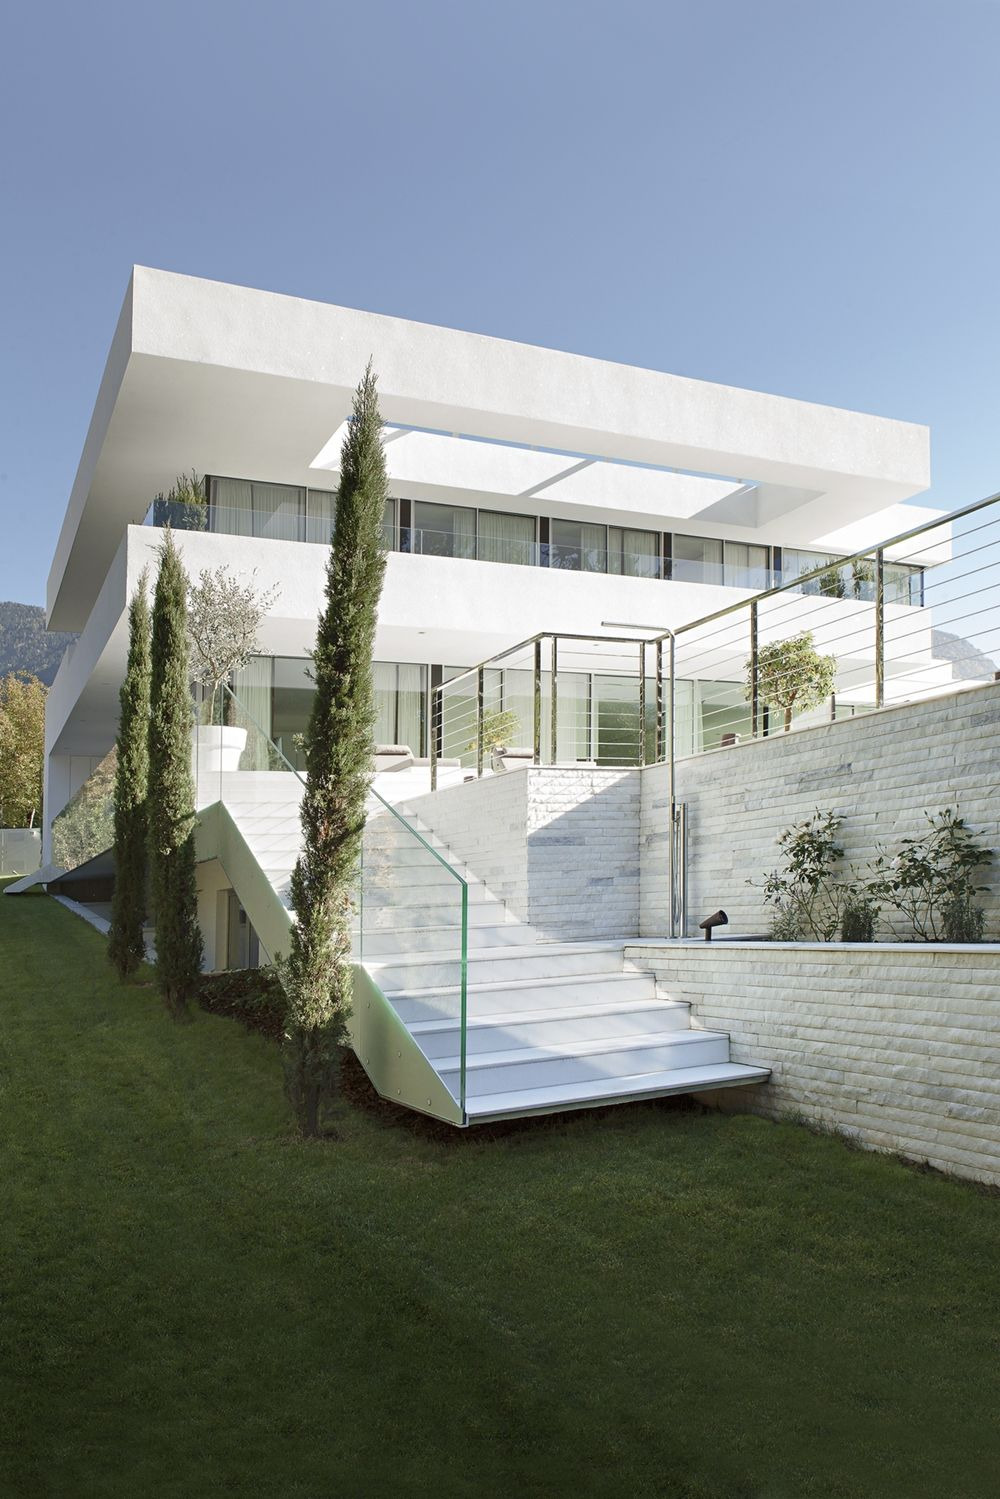 Worlds Most Beautiful House Fresh House M One Of the Most Beautiful Houses In the World